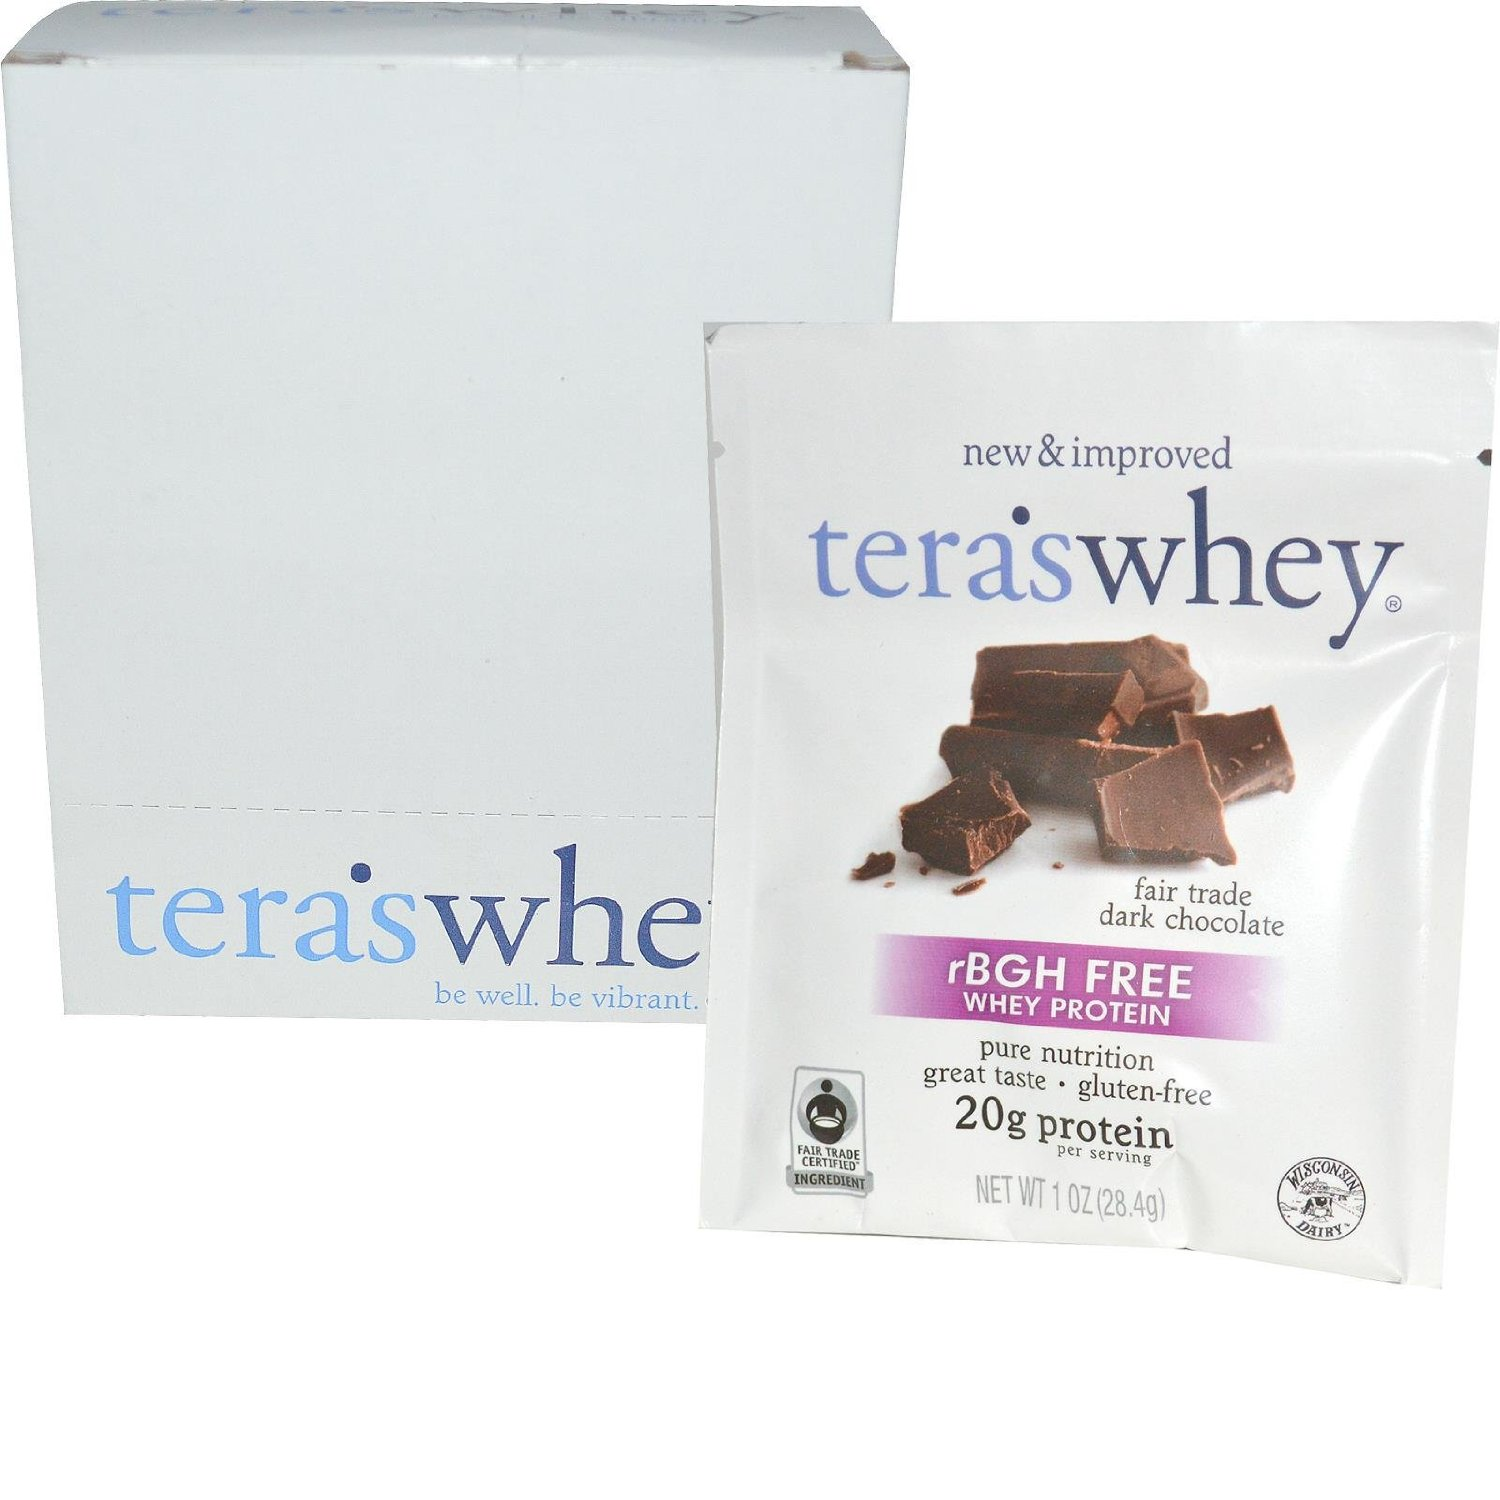 Image of Cow Whey rBGH Free Fair Trade Dark Chocolate 1oz Counter Display